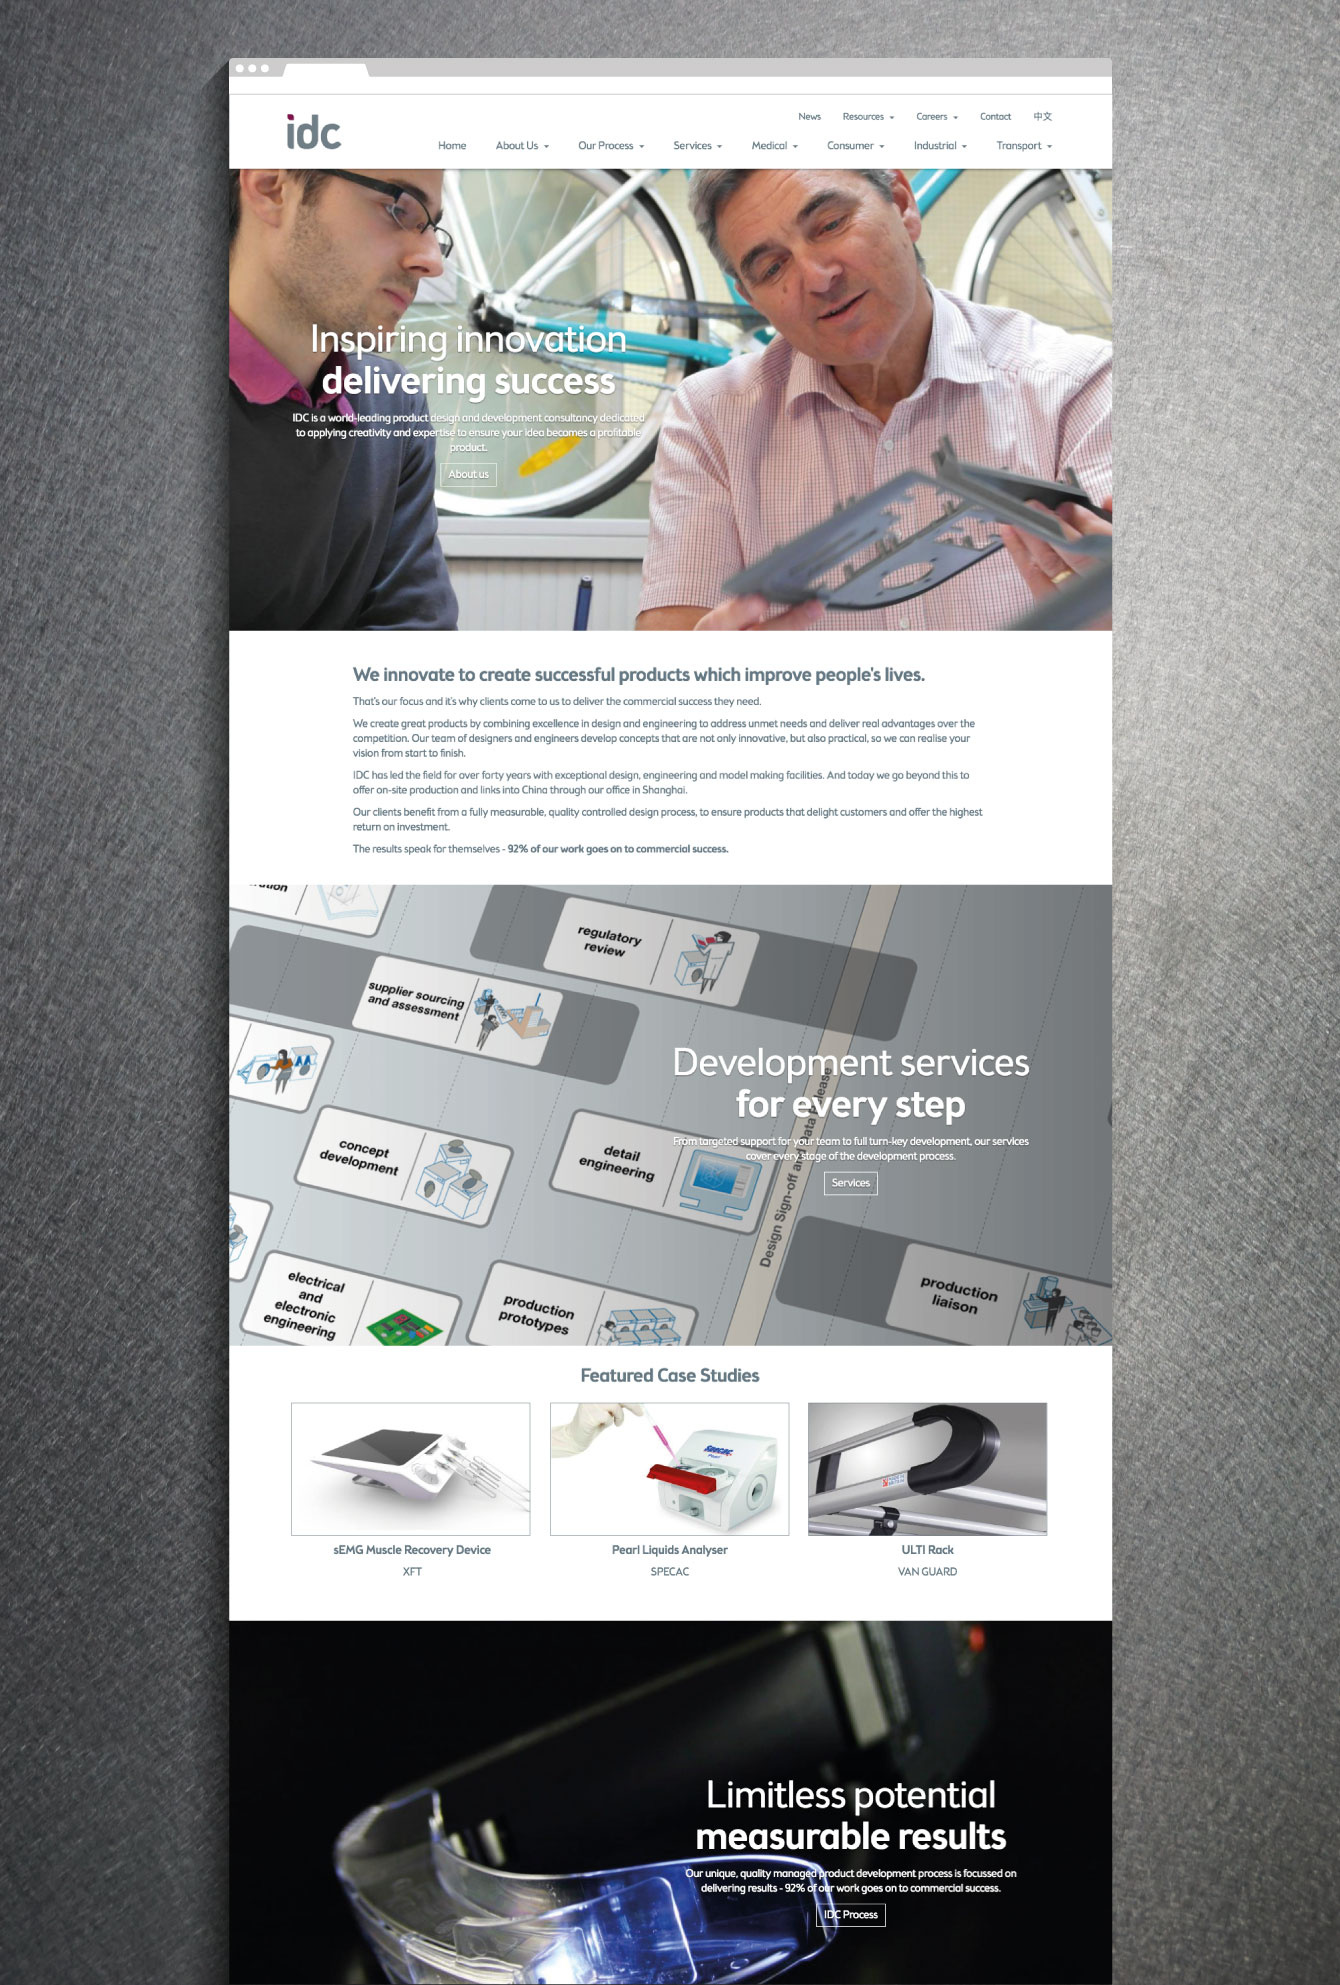 IDC website homepage - desktop